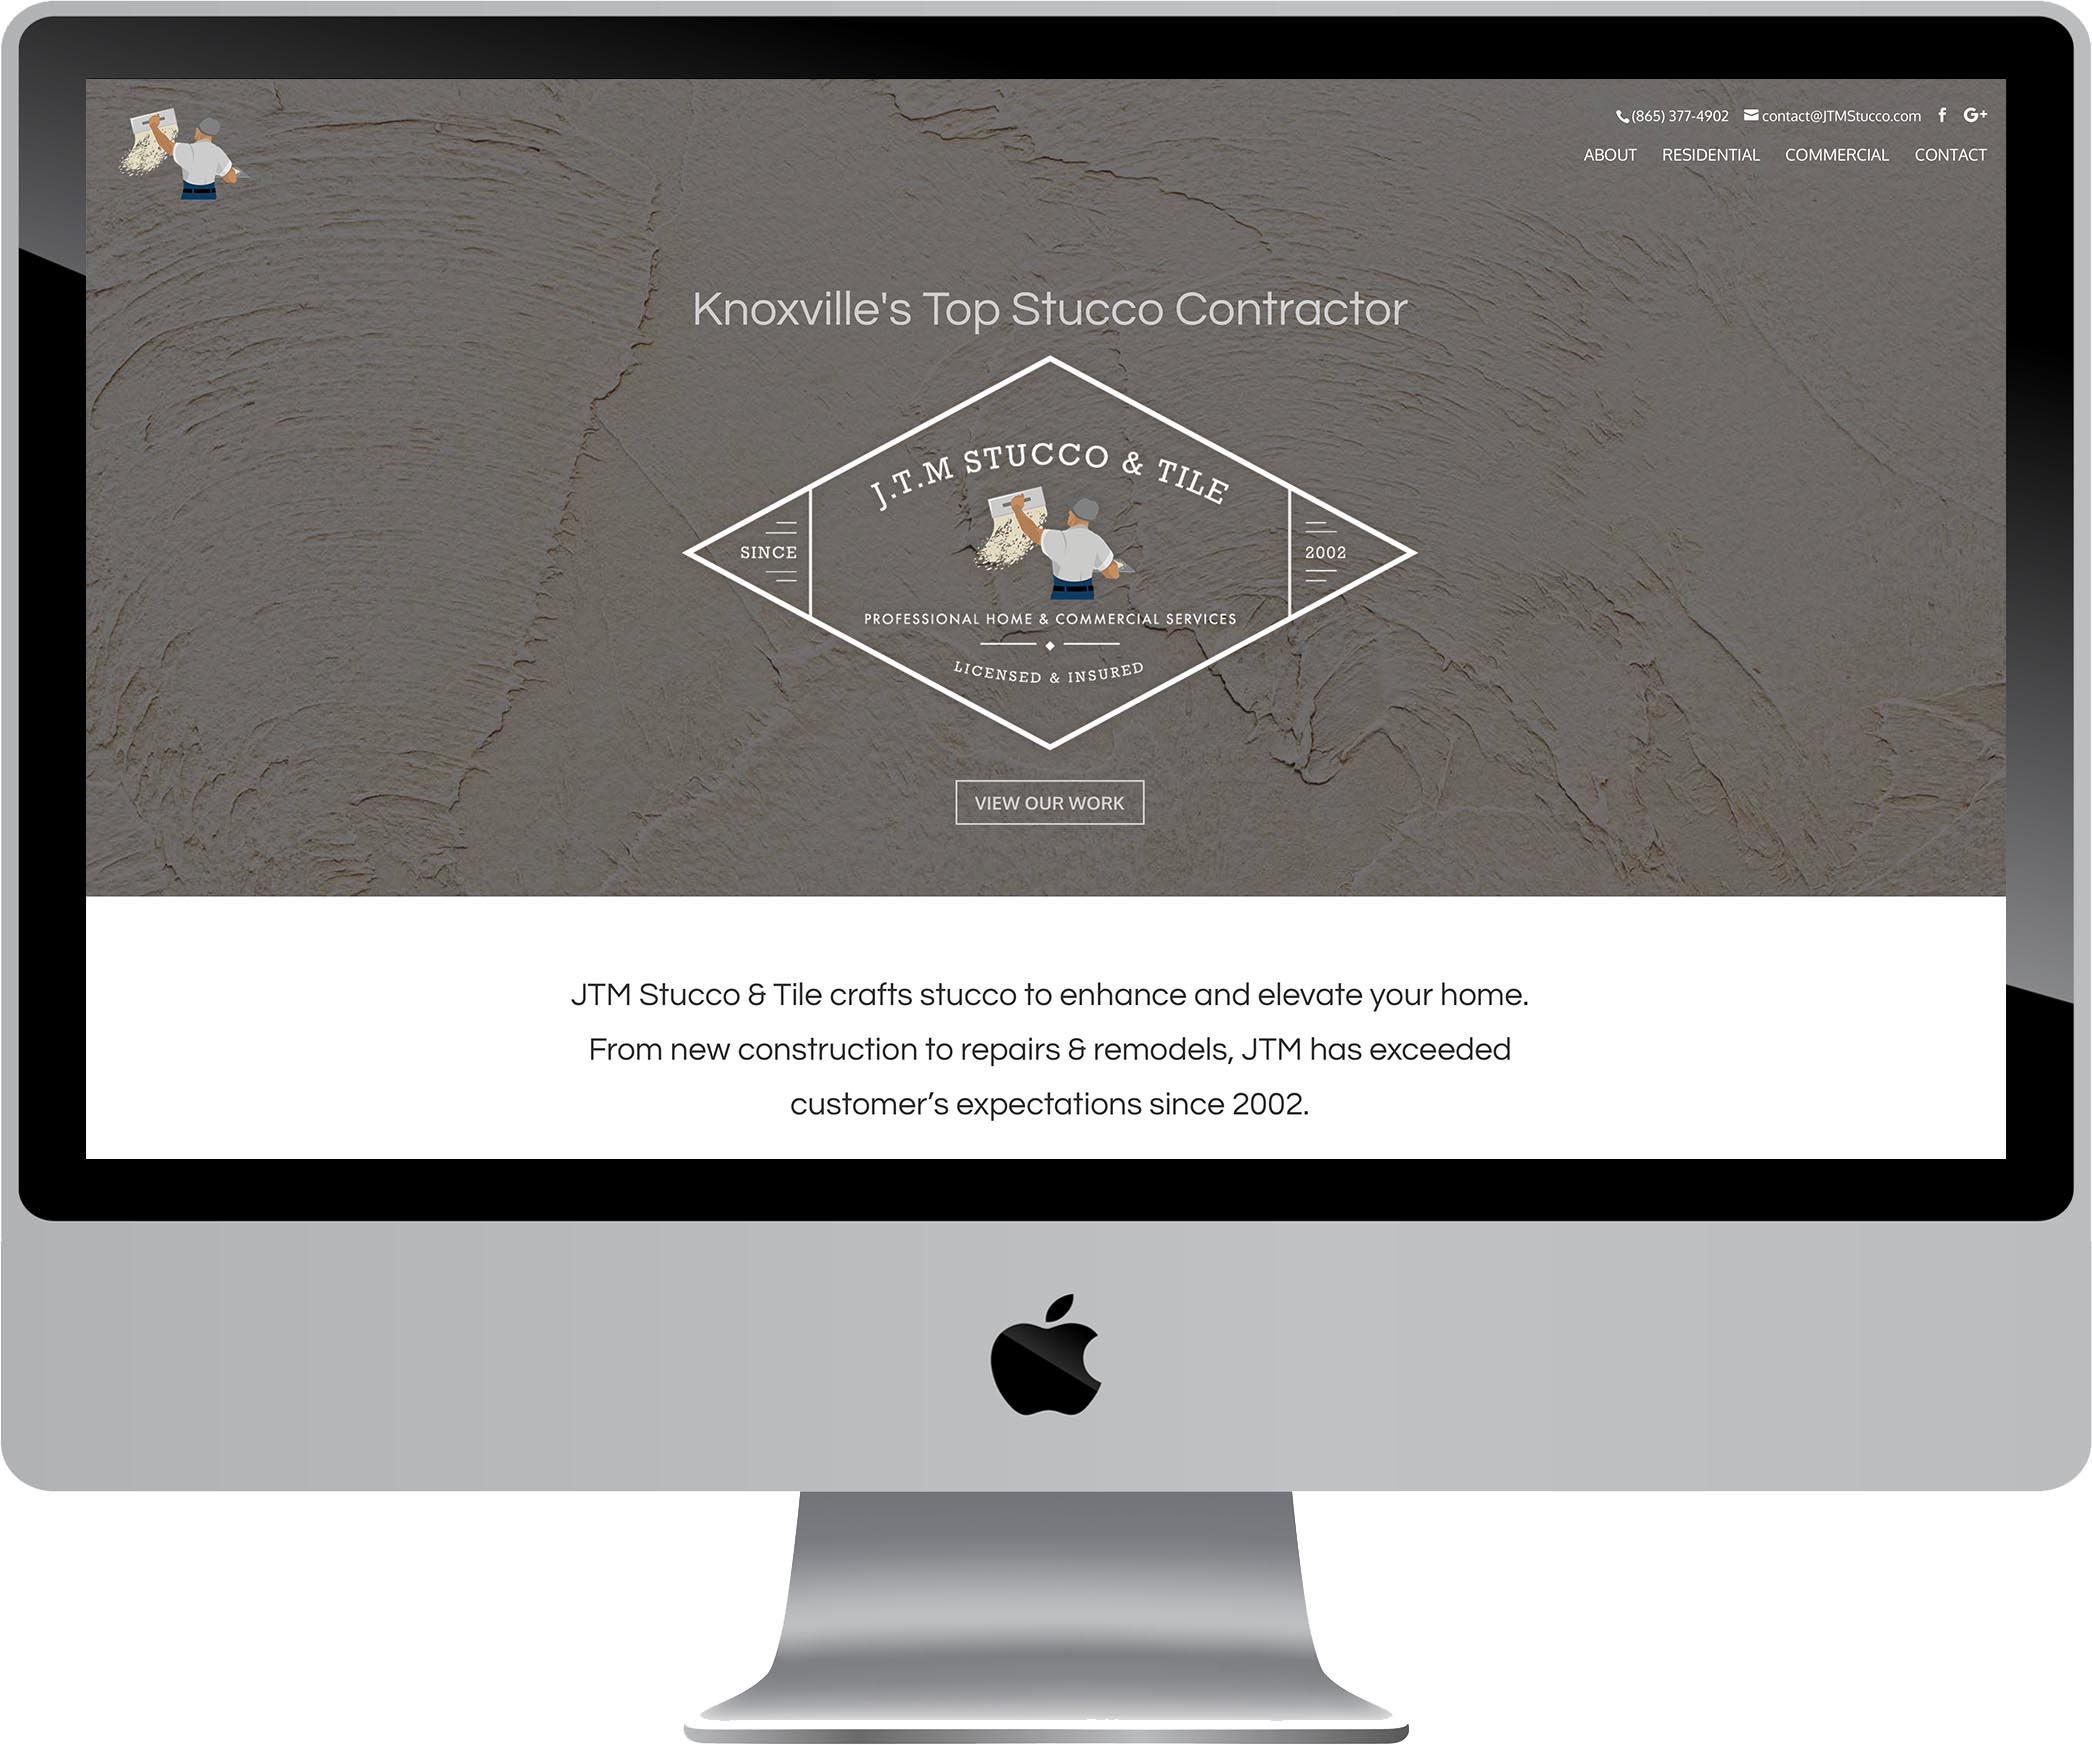 JTM Stucco & Tile Website Design